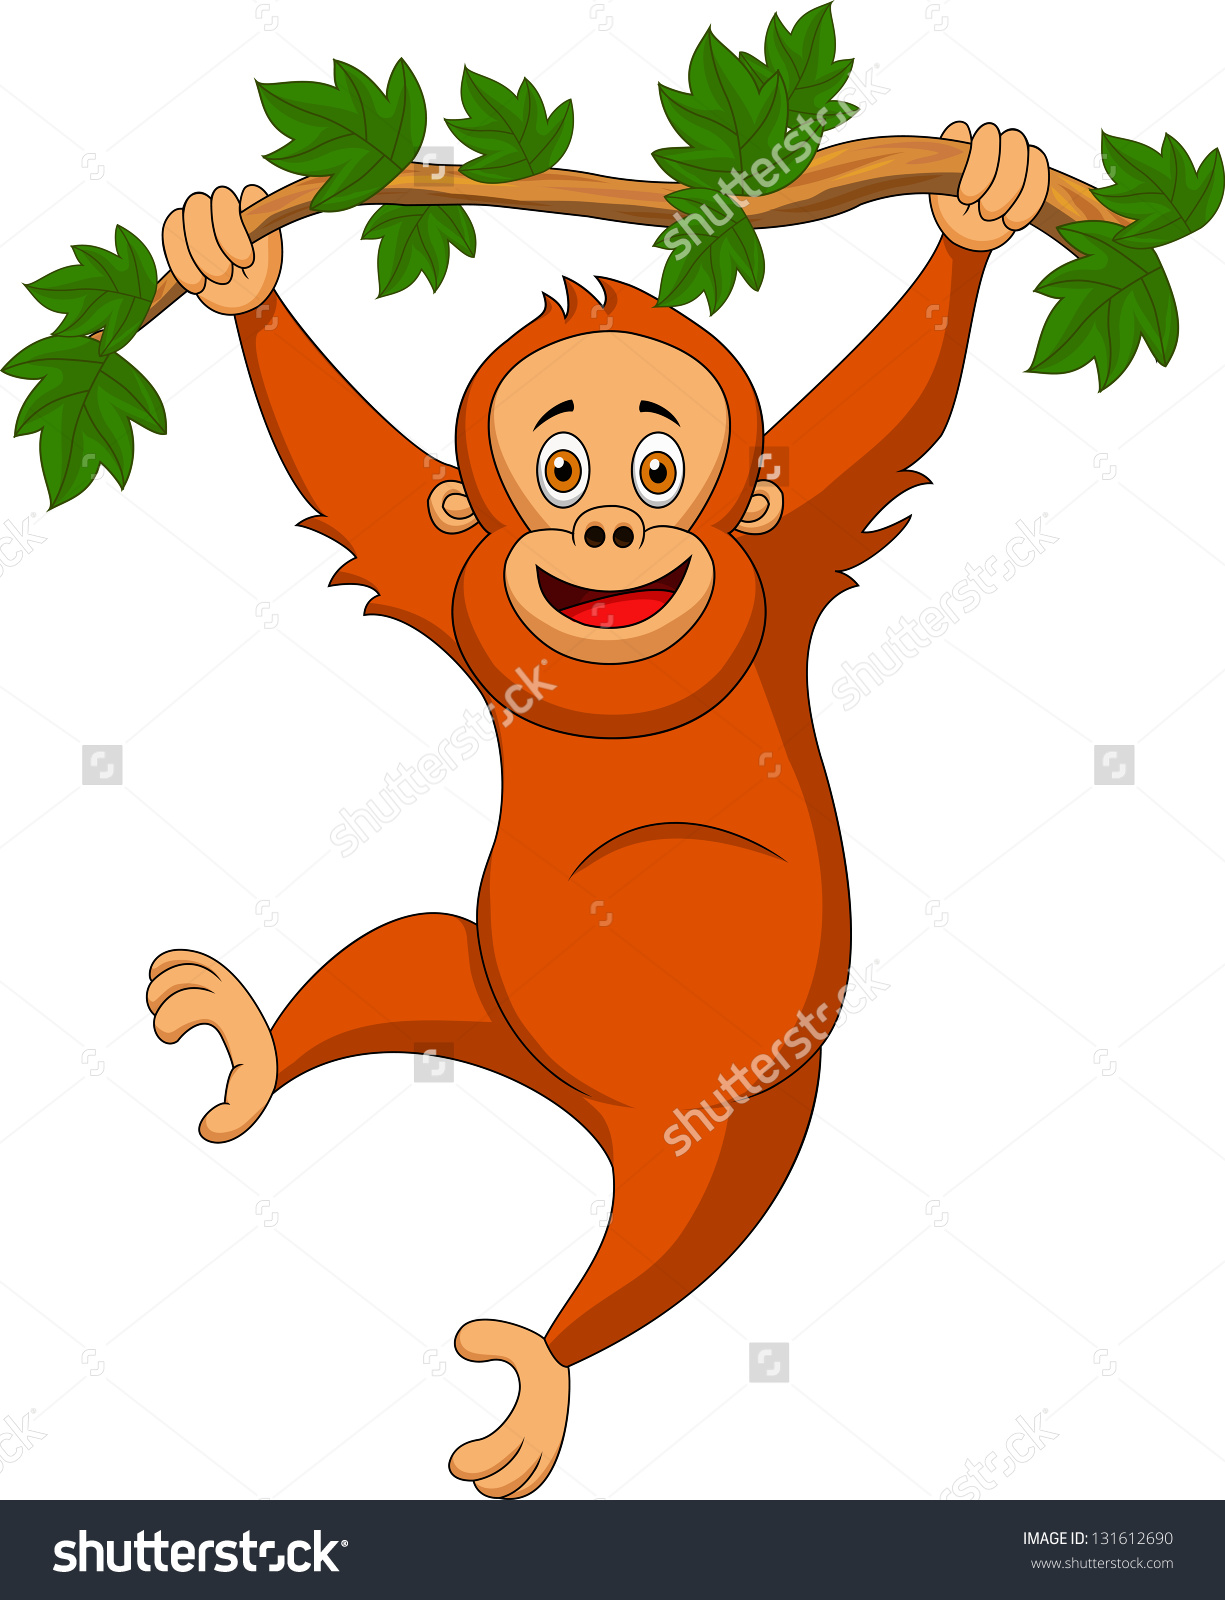 1225x1600 Cute Orangutan Cartoon Hanging On A Tree Branch Stock Vector